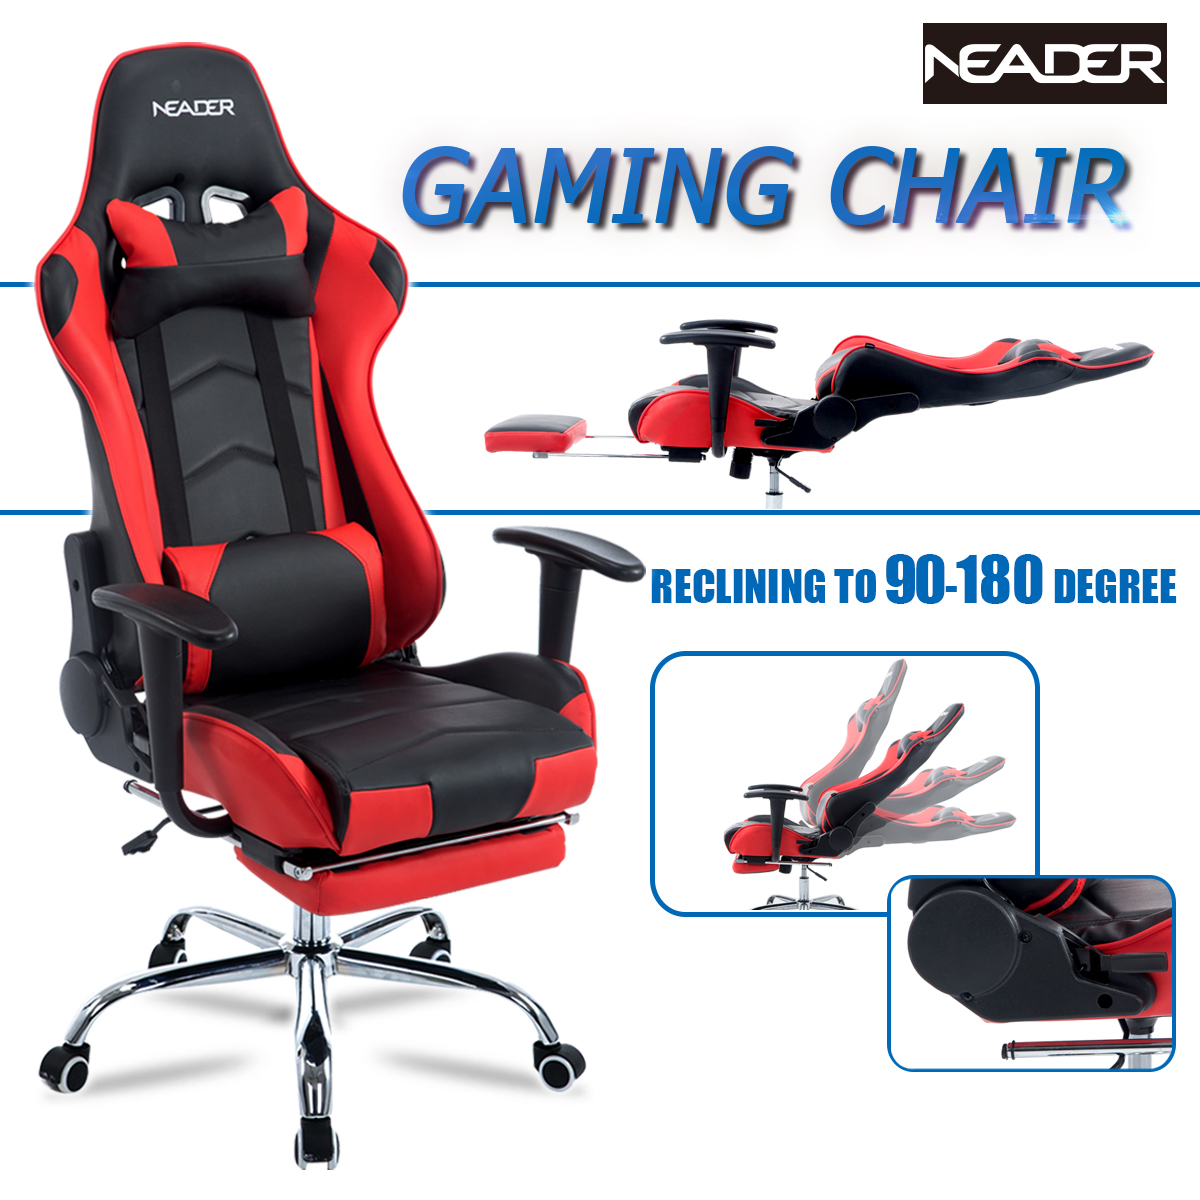 office recliner chair. High Back Computer Racing Gaming Chair, Ergonomic Executive Home Office Reclining Chair With Footrest, Recliner A